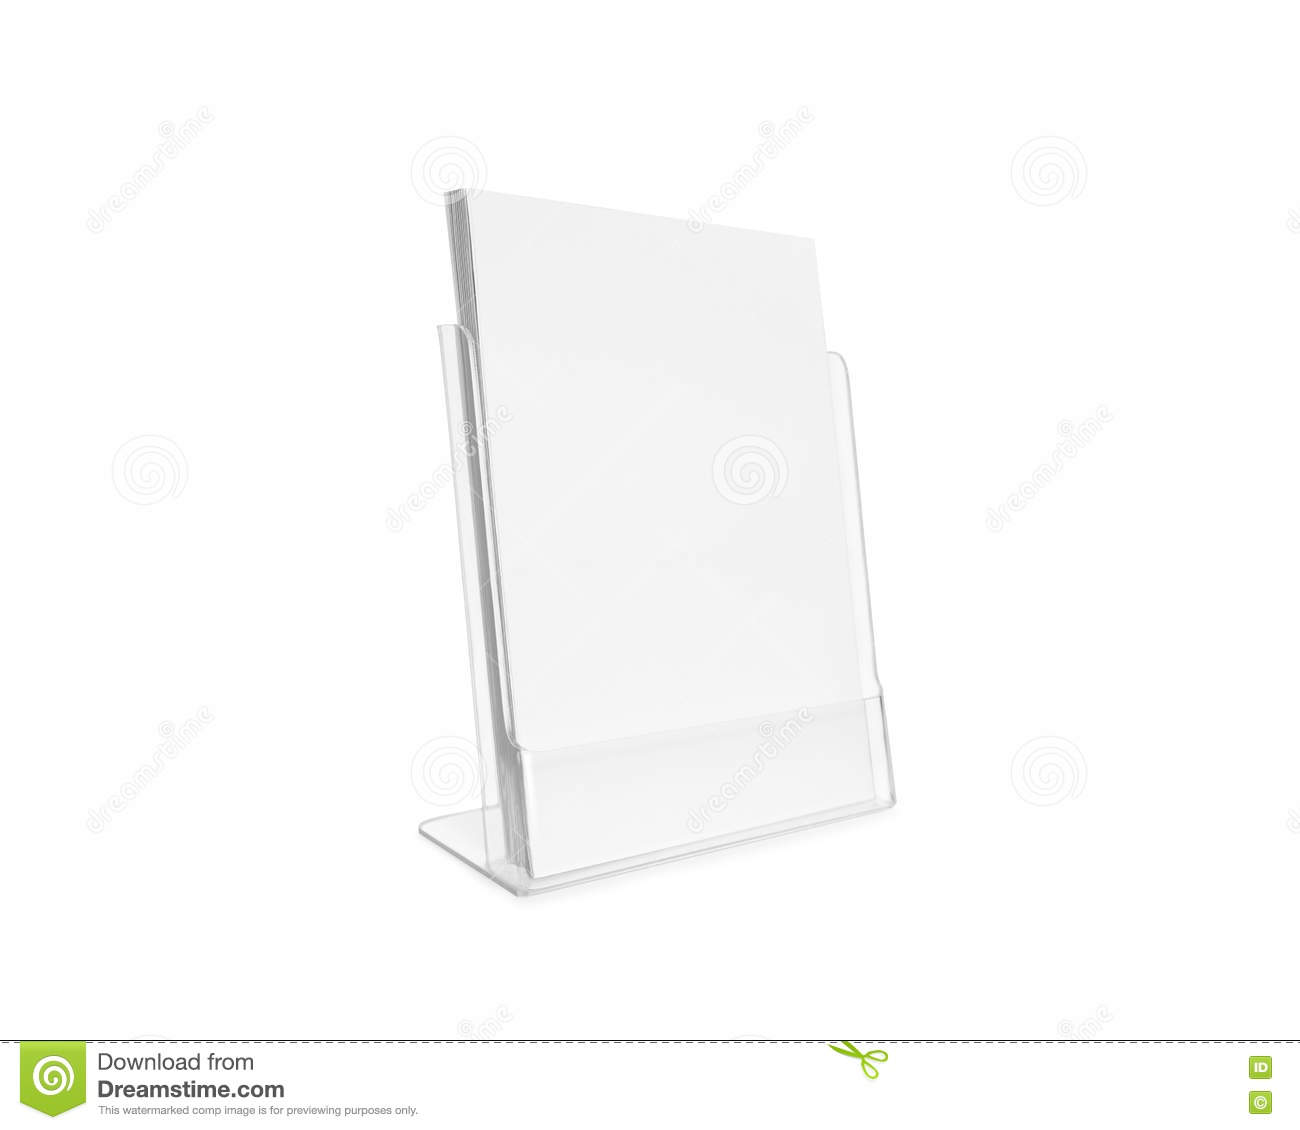 paper brochure holder template - glass holder stock photos download 7 231 images